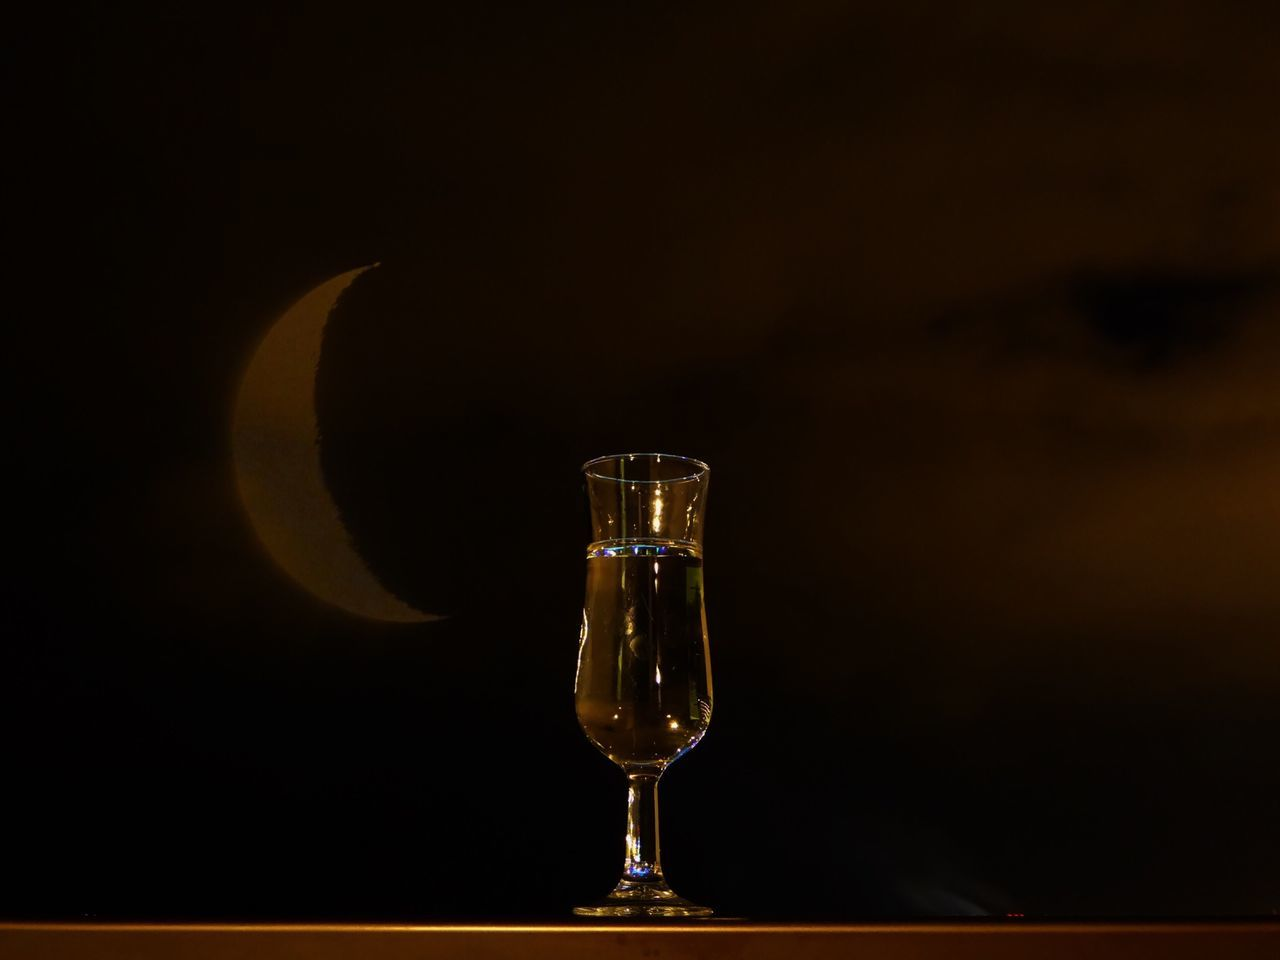 A Magic Potion and I am Feeling Good for Saturdaysong_eyeemchallenge Nightphotography Night Lights Open Edit Holiday POV Liquid Lunch Showcase: February Moon And Clouds